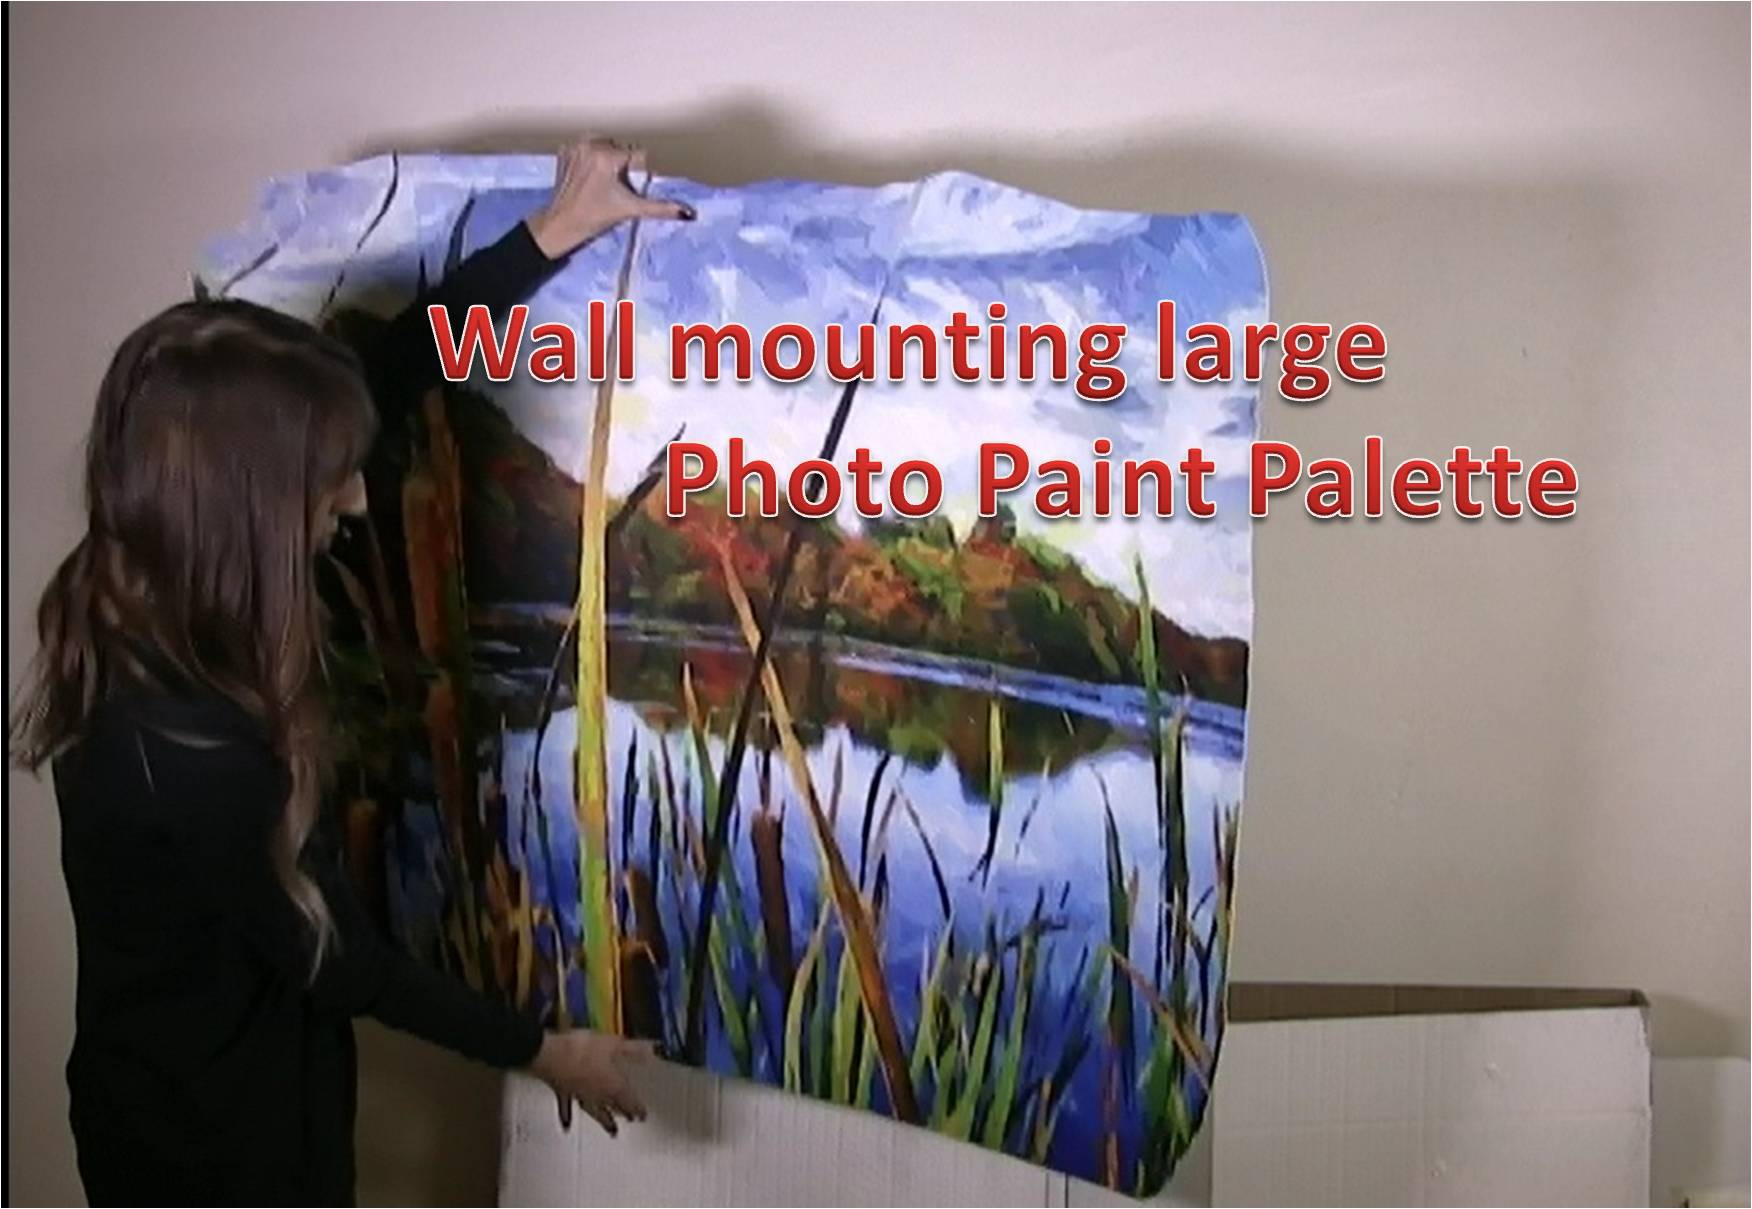 Installing a large Photo Paint Palette to wall